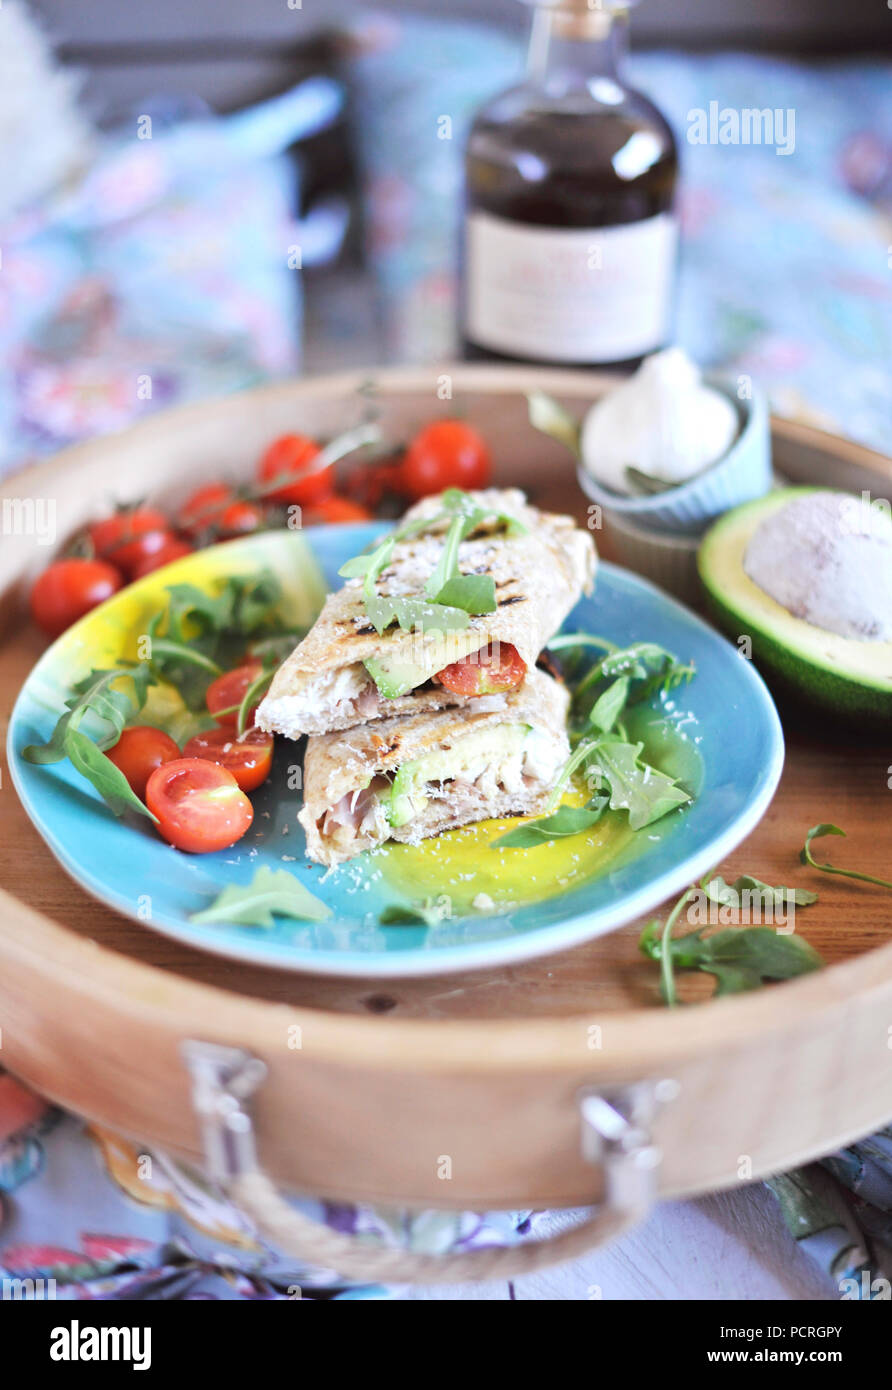 roll of pita bread on the grill. stuffing with fish and salad. avocado and olive oil. dinner on a wooden tray. healthy food Stock Photo